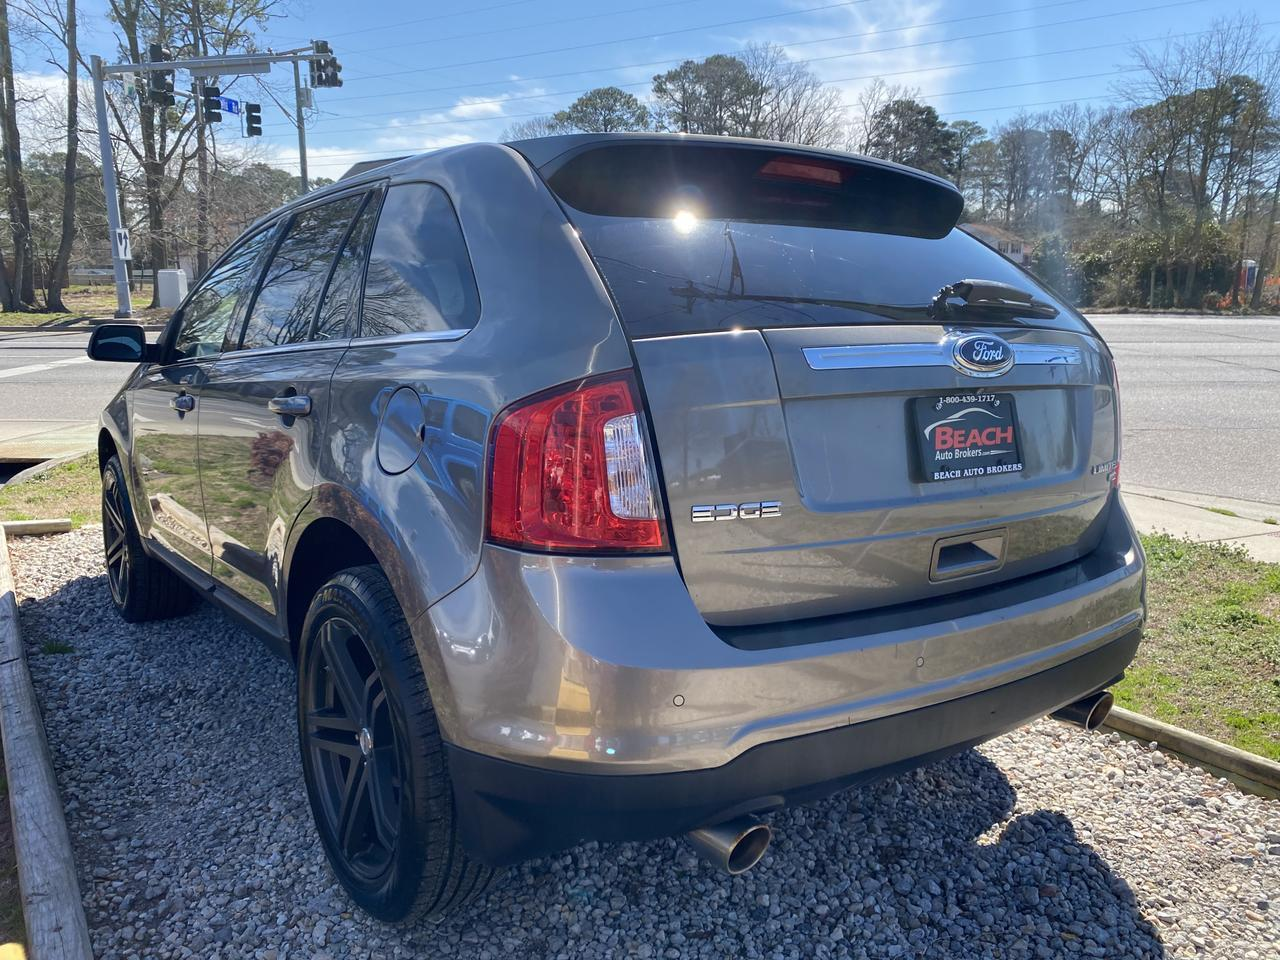 2014 FORD EDGE LIMITED, WARRANTY, LEATHER, NAV, HEATED/COOLED SEATS, BACKUP CAM, PARKING SENSROS, CLEAN CARFAX! Norfolk VA